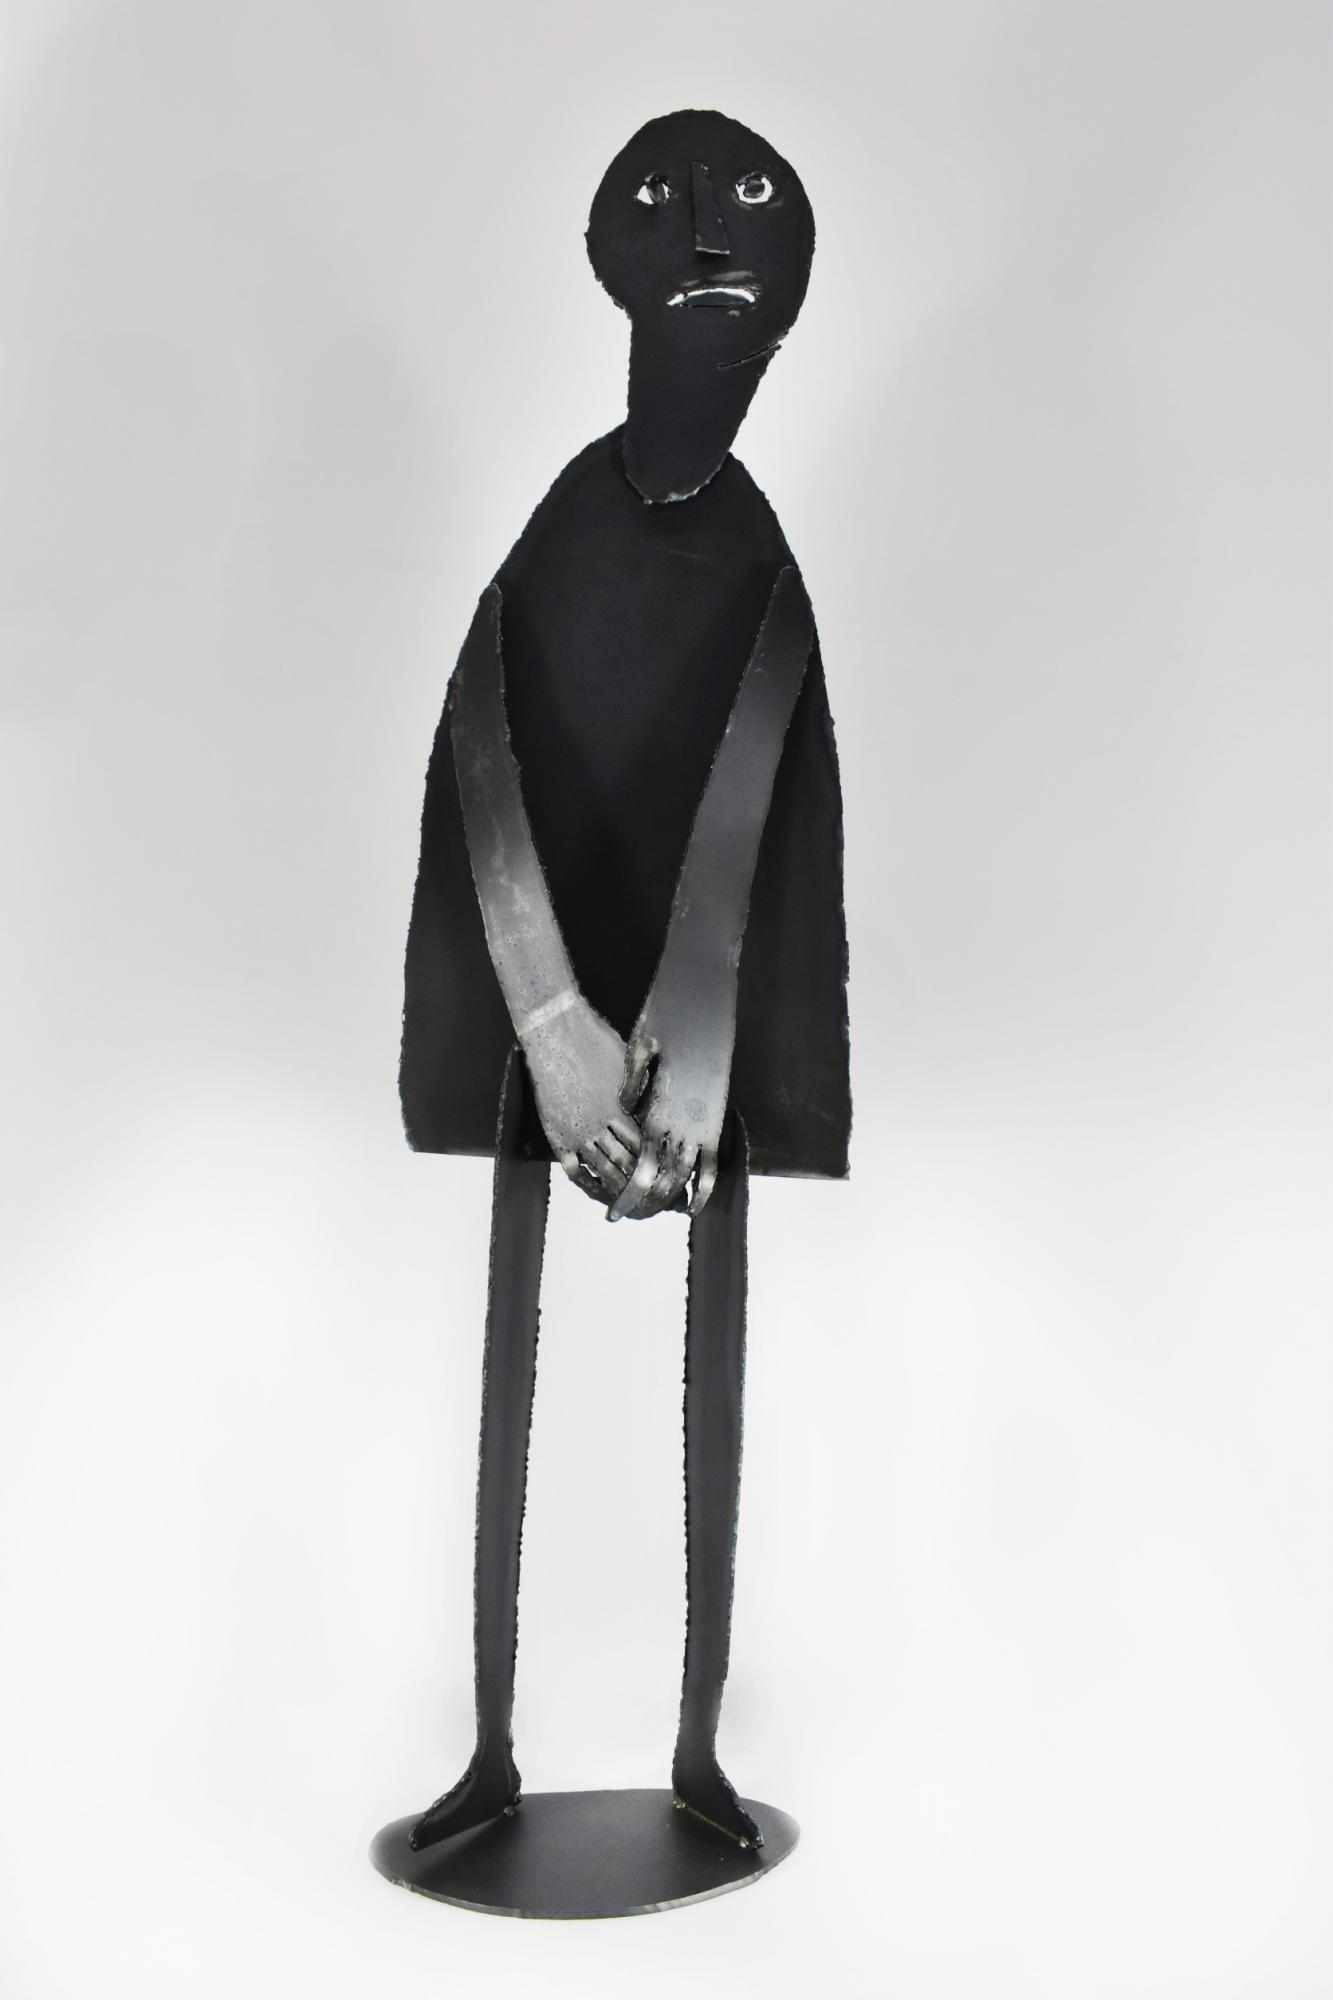 Human 等待的人 NO Sooncheon 盧淳天 (South Korea, 1981-) Steel 鐵 103 x 27 x 16 cm 2016